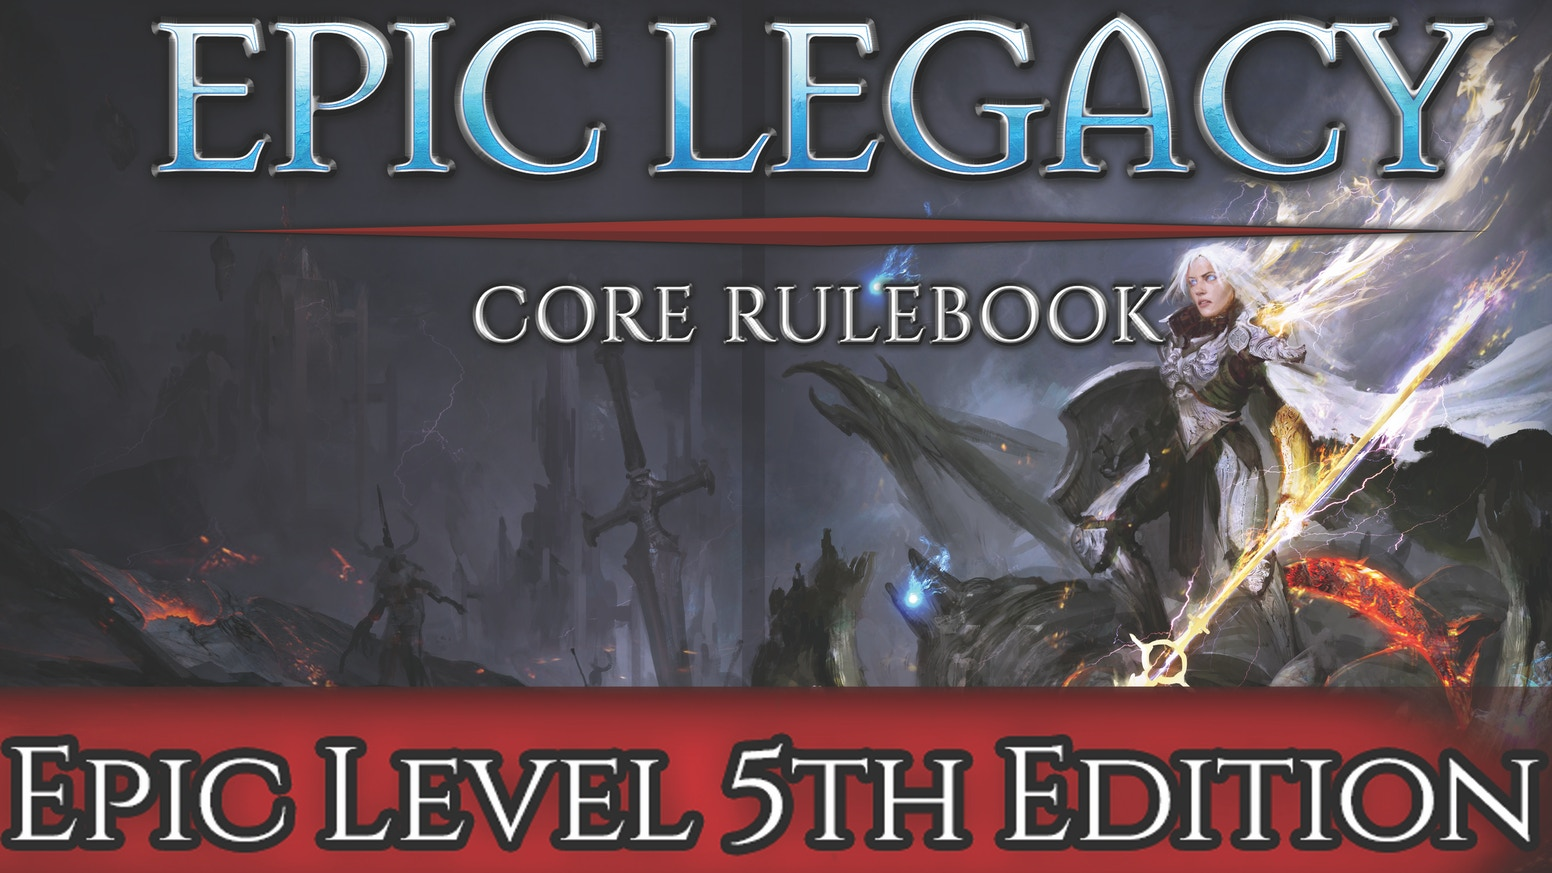 The ultimate guide to Epic Level 5th Edition. Bring your characters and DM arsenal to new heights of power beyond 20th level!